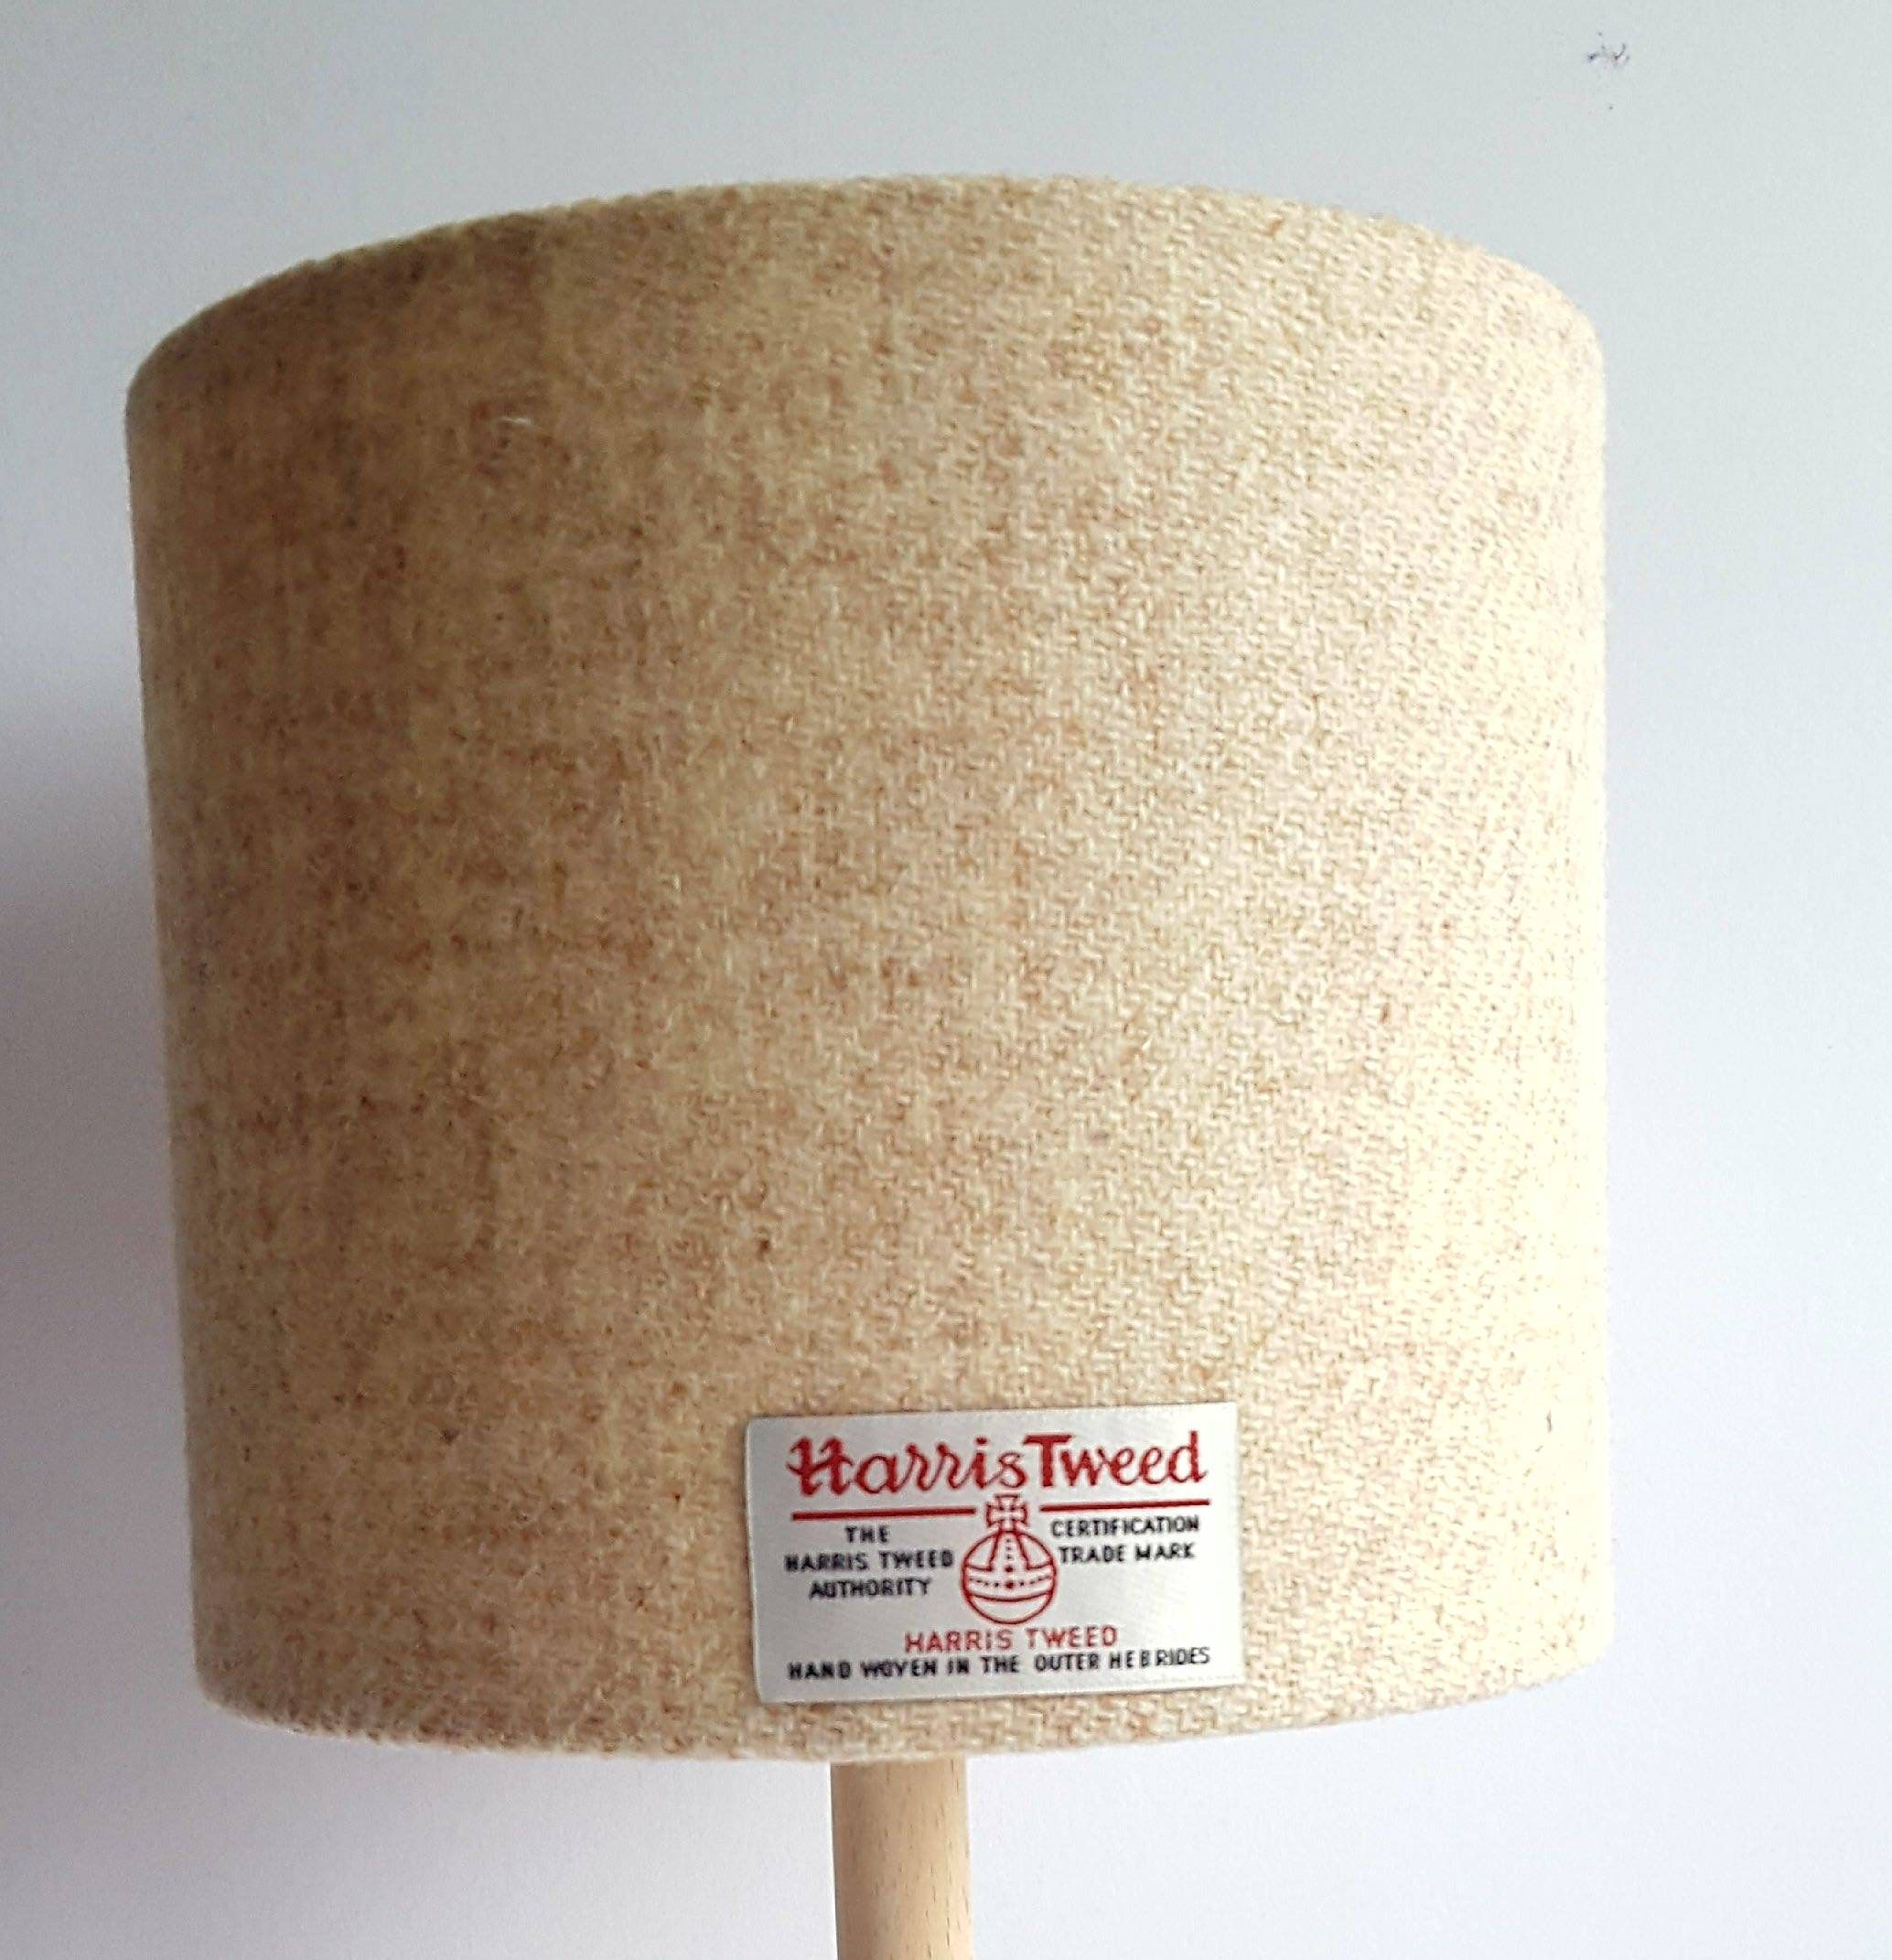 Harris Tweed Lampshade Cream Oatmeal Beige Etsy Handmade Lampshades Harris Tweed Energy Saving Light Bulbs